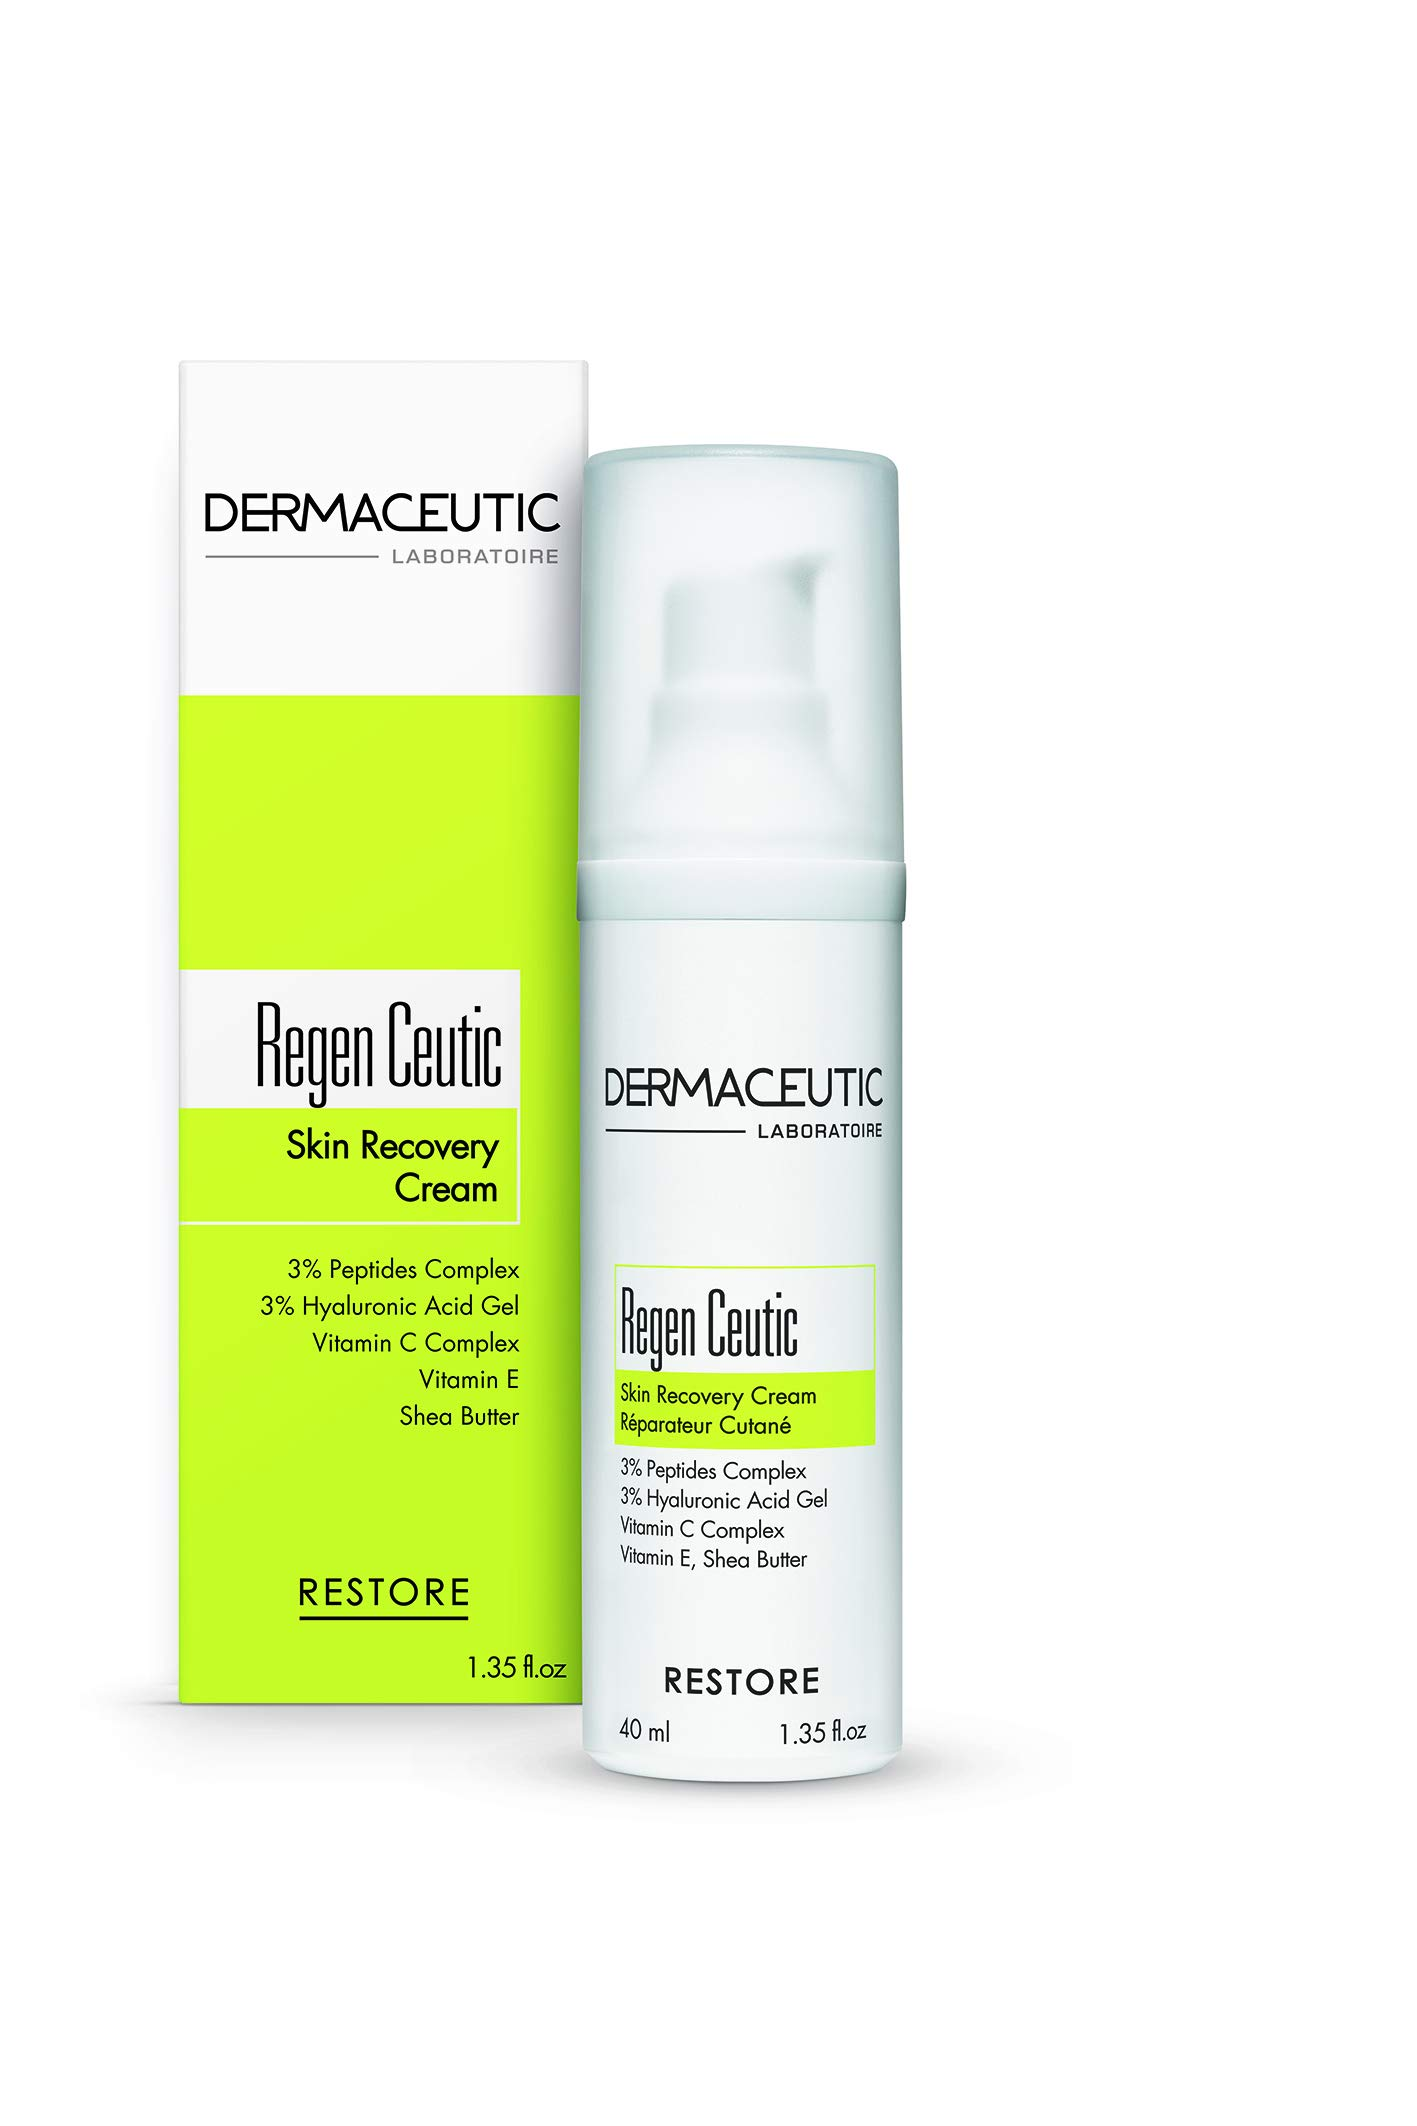 Dermaceutic Regen Ceutic - Skin Recovery Cream for sensitive and dehydrated skin - Skin repair cream with Hyaluronic acid, Peptides, Vitamin C and E and Shea butter - 40ml